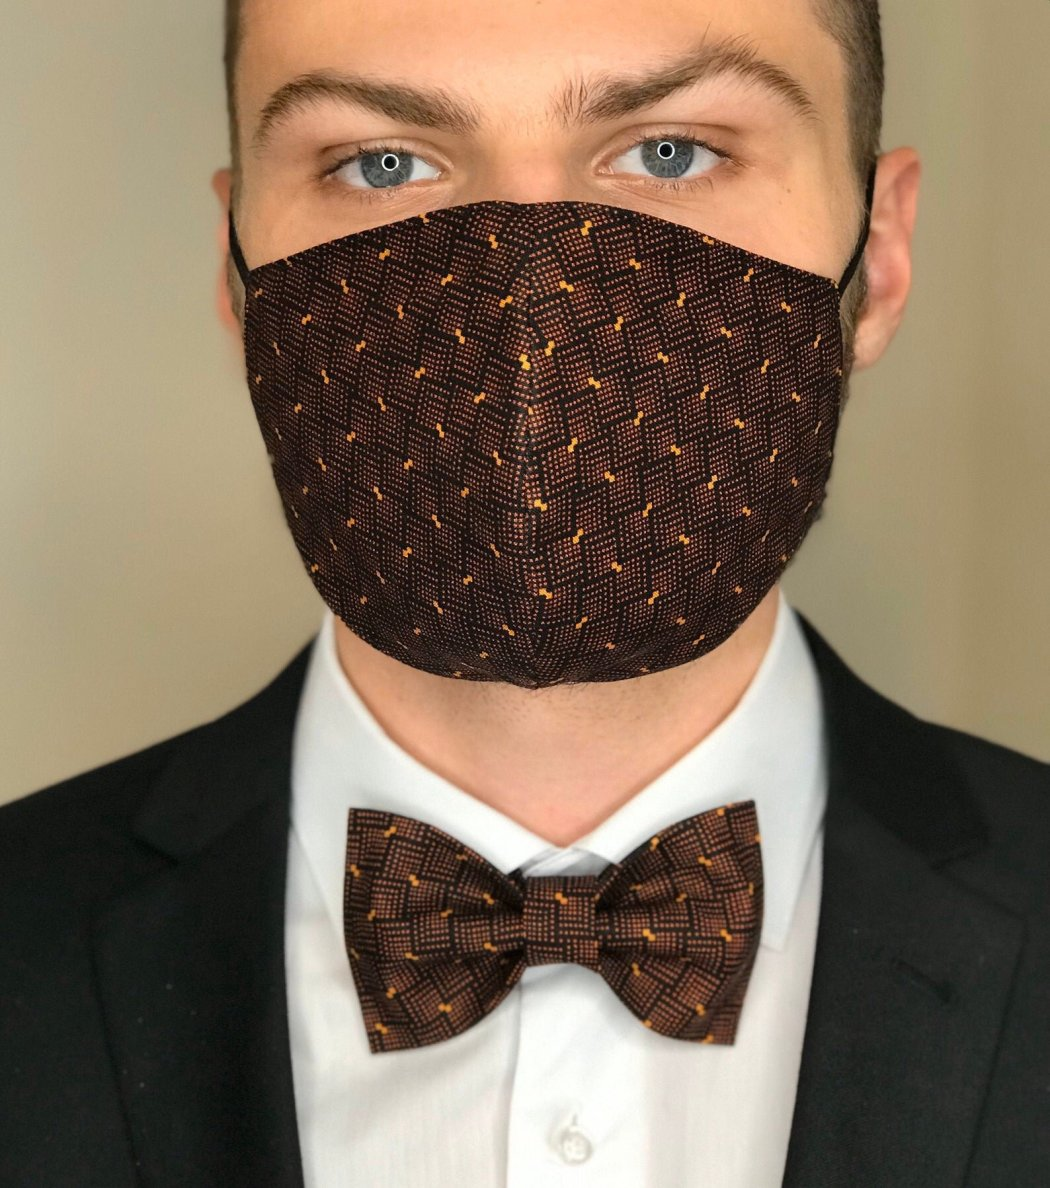 Not to be left out of the coordinating bridal attire, this Bow Tie + Face Mask matching set from Fashion Bride Studio out of Spokane, Washington makes sure the grooms, groomsmen, father of the brides, and father of the grooms look at dapper as can be too. Offering a rainbow of color options and paisley's, these masks and bow tie sets are sure to be a social distance friendly wedding must.